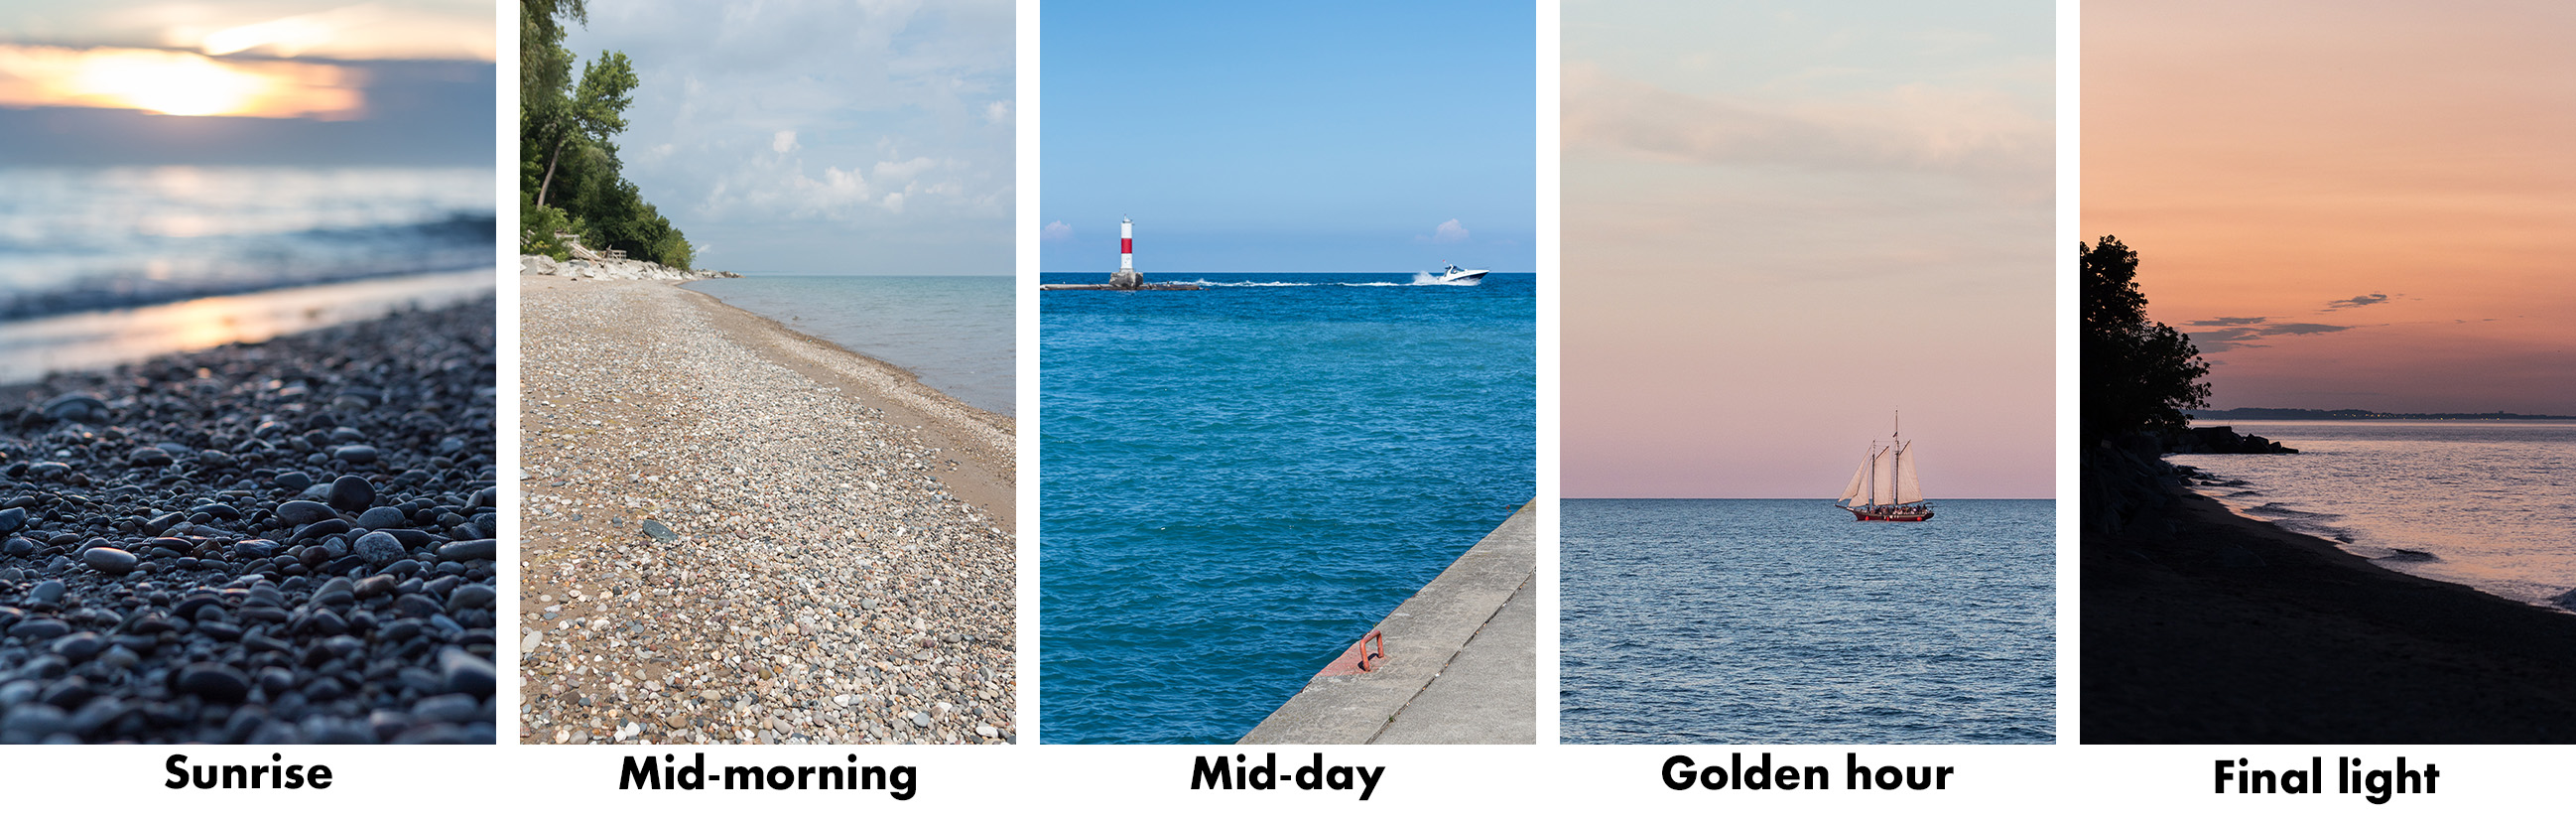 Beach Light Progression Over the Day | https://www.roseclearfield.com